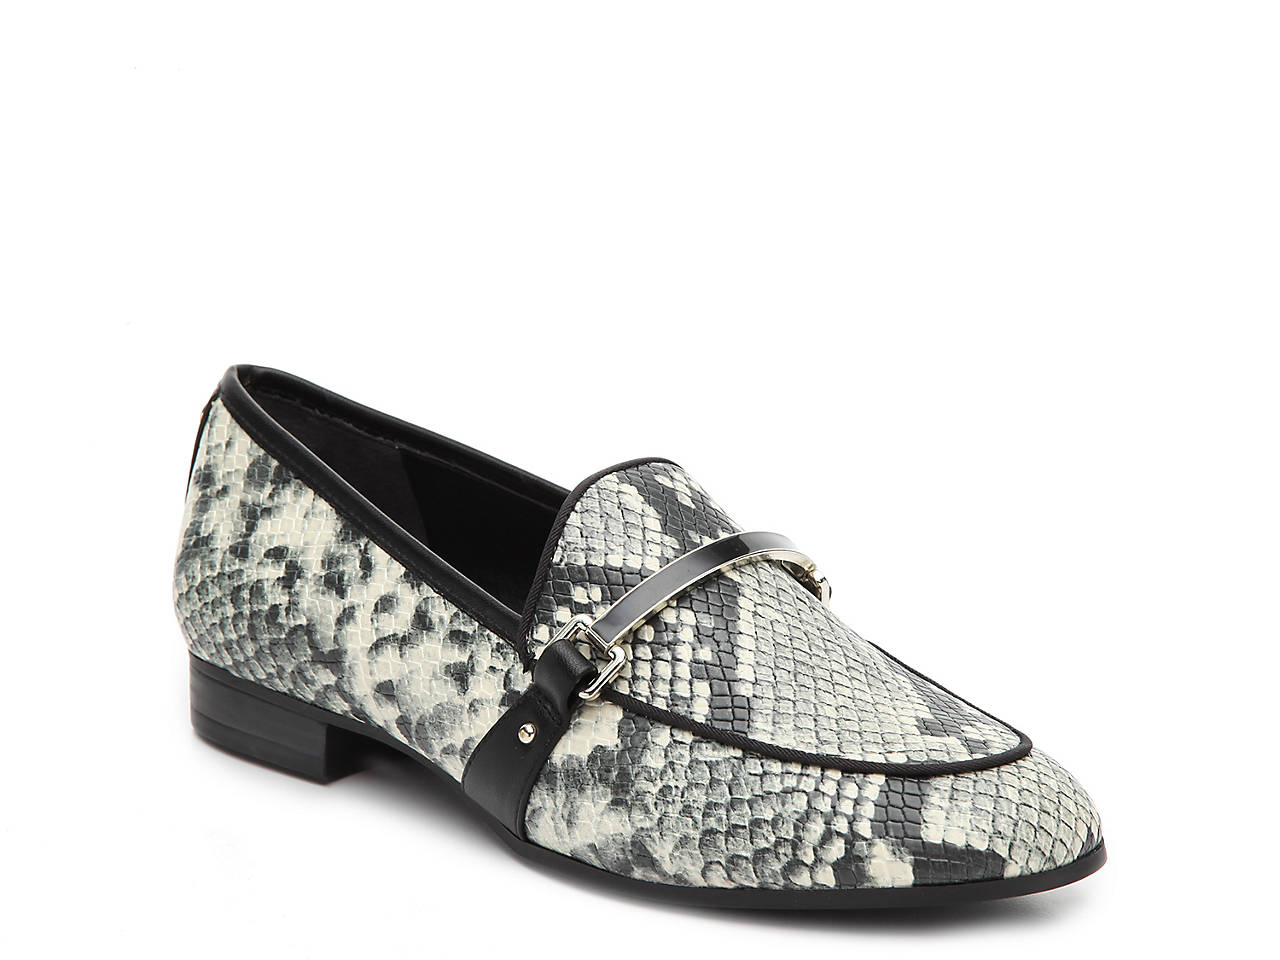 7a304c79d Circus by Sam Edelman Hendricks Loafer Women s Shoes